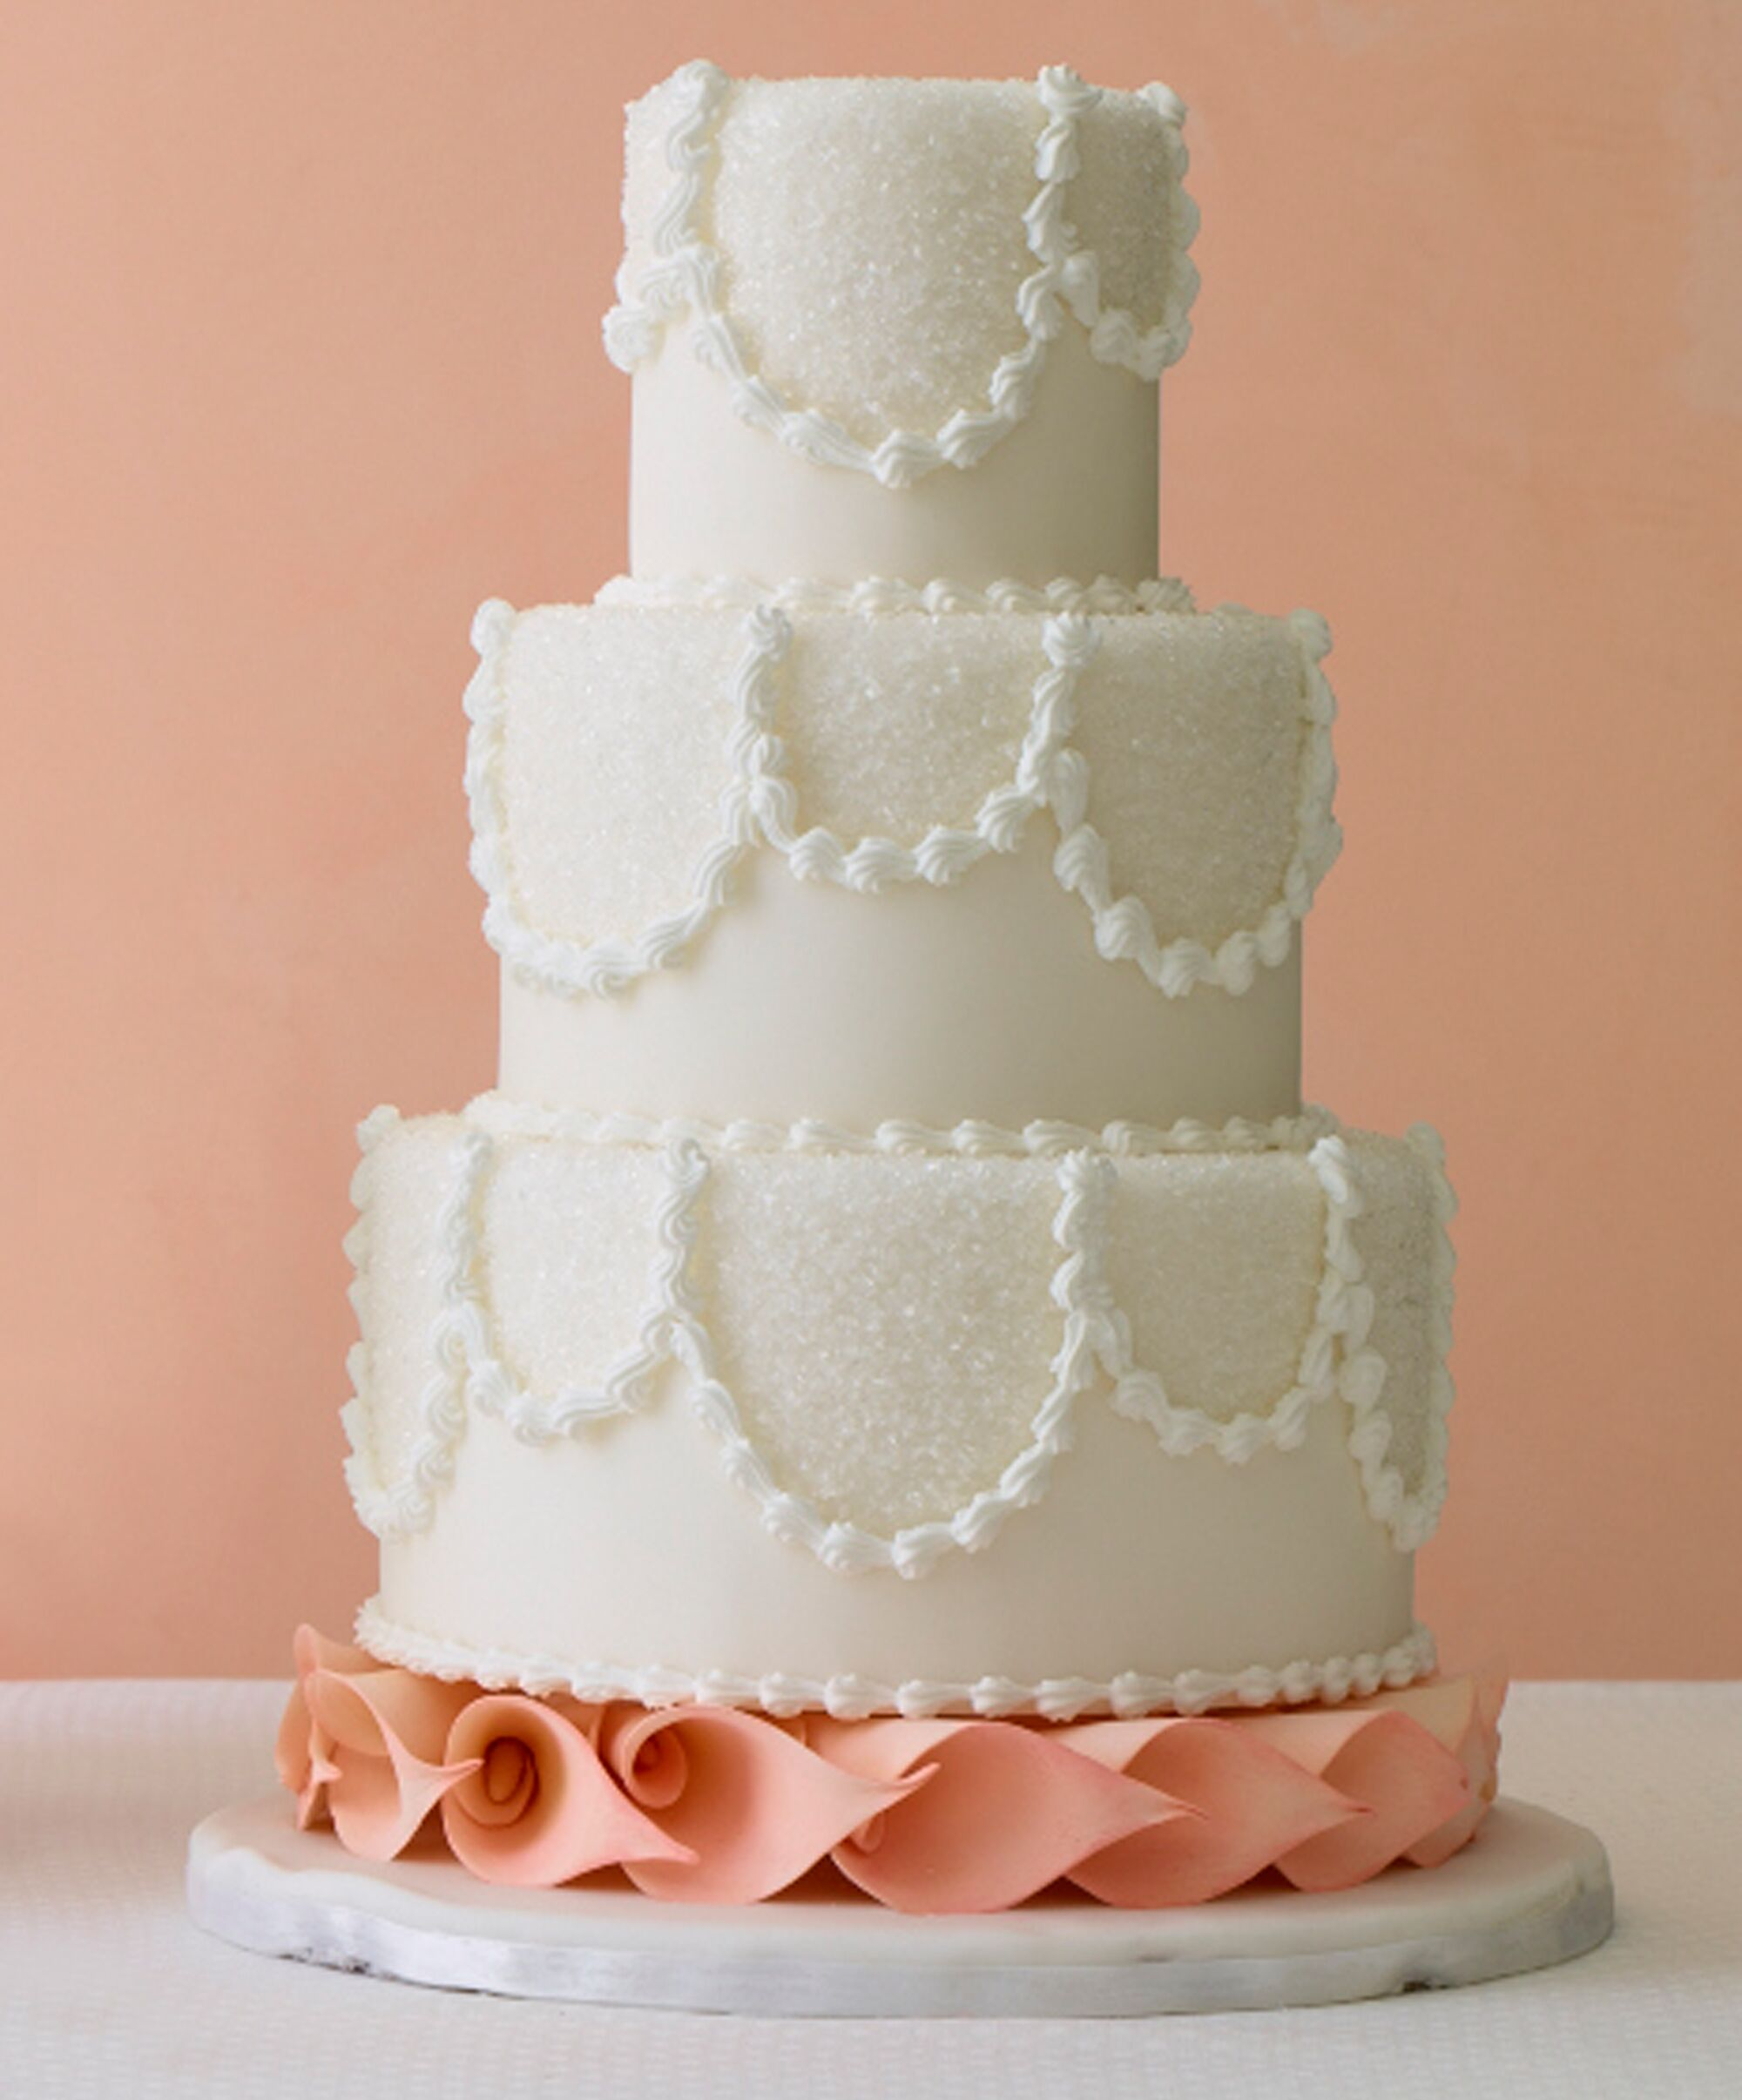 7 Pretty Wedding Cakes We Can't Stop Looking At